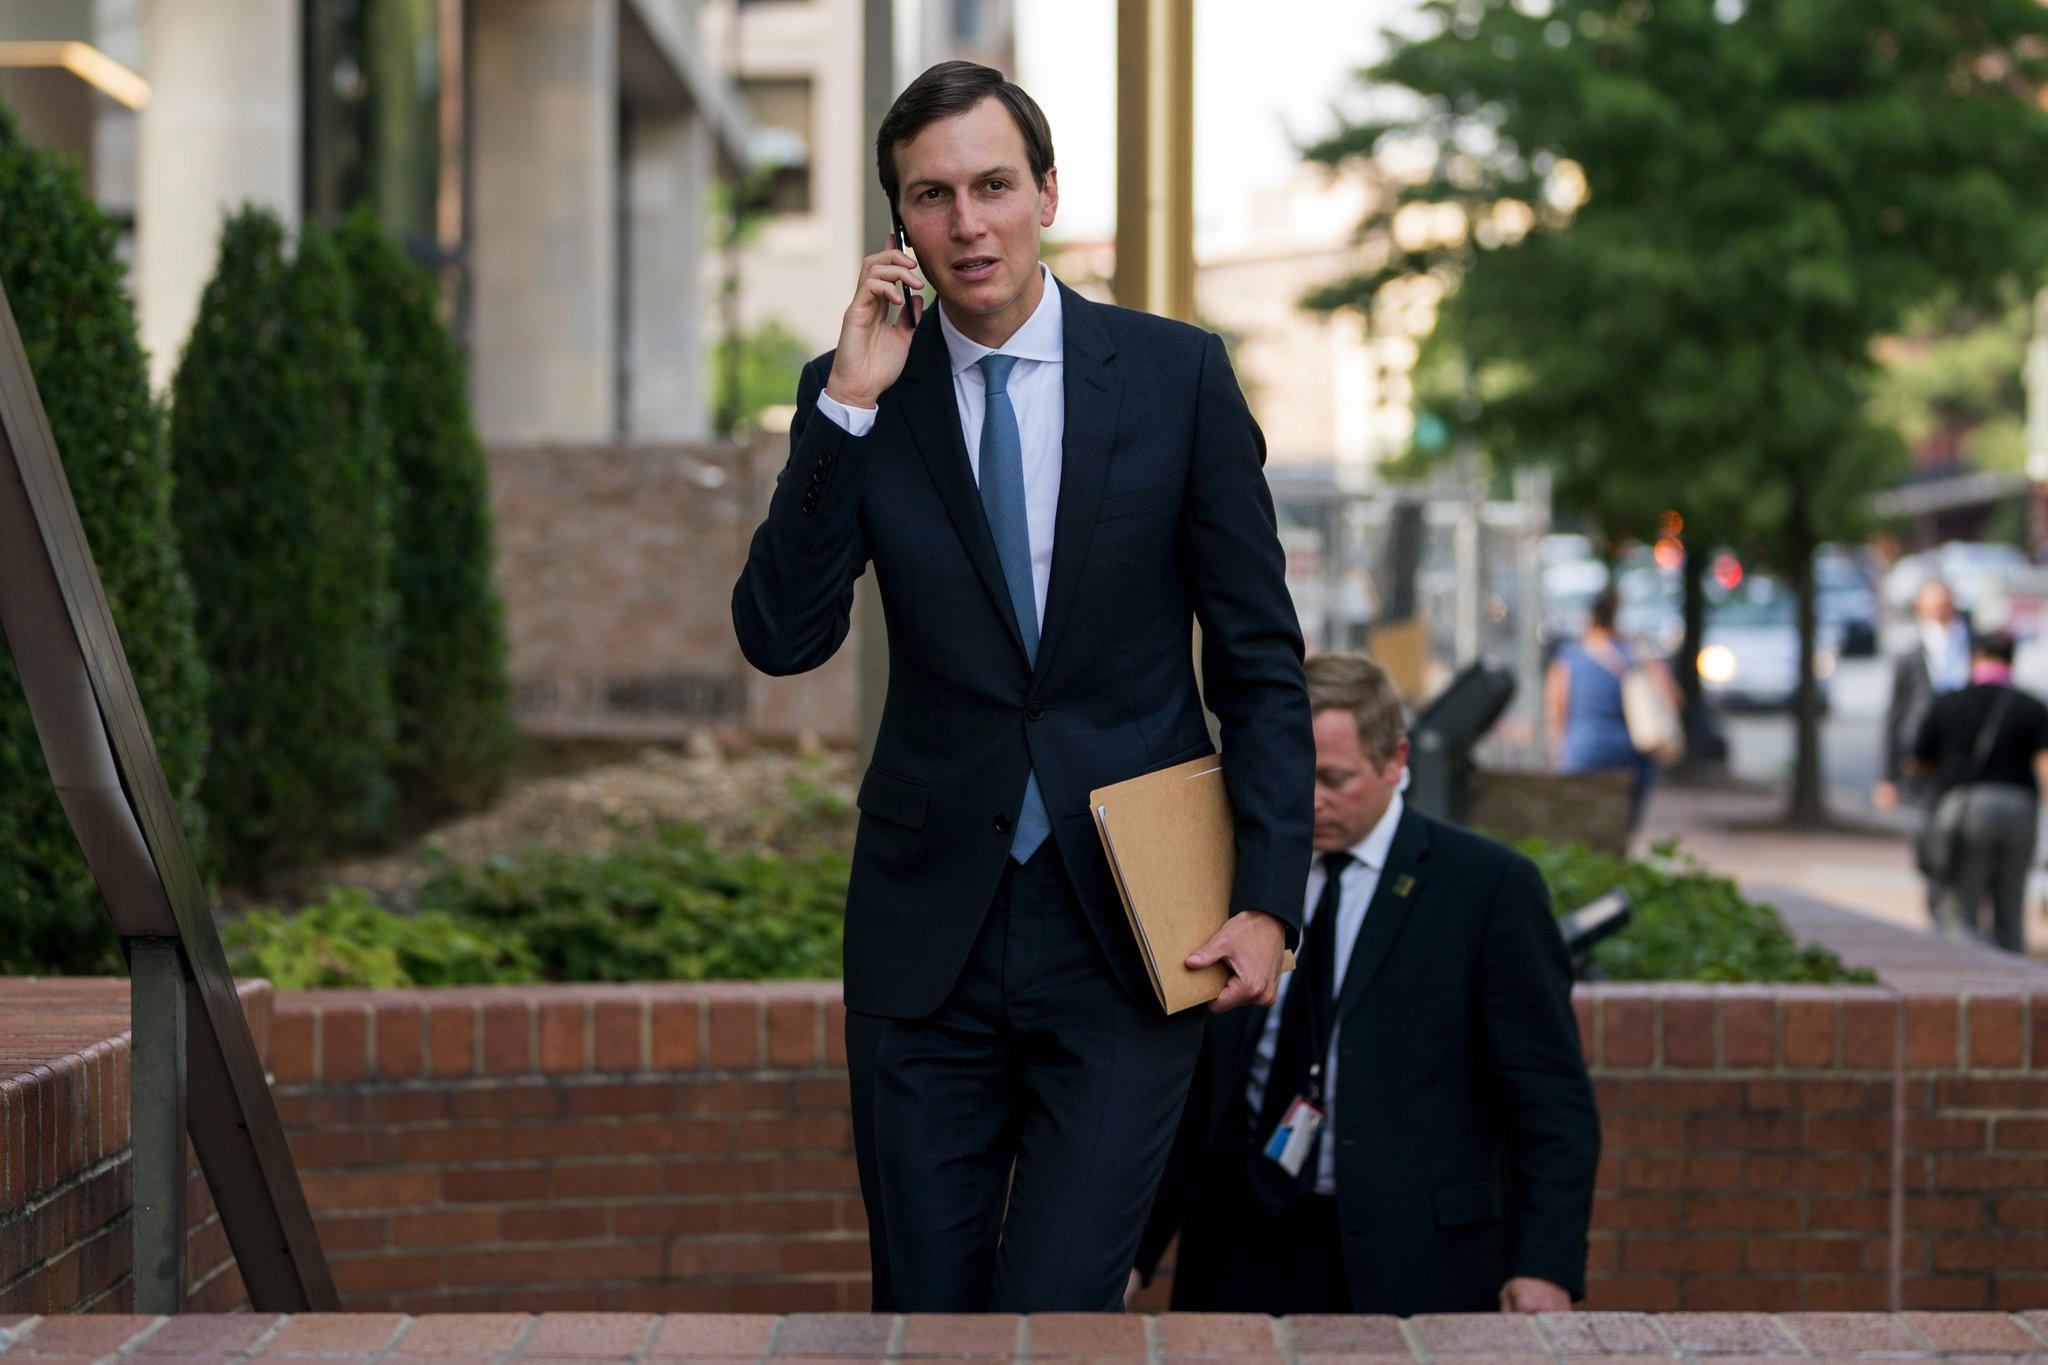 Jared Kushner uses WhatsApp for official business, Democrat says aide's lawyer told him